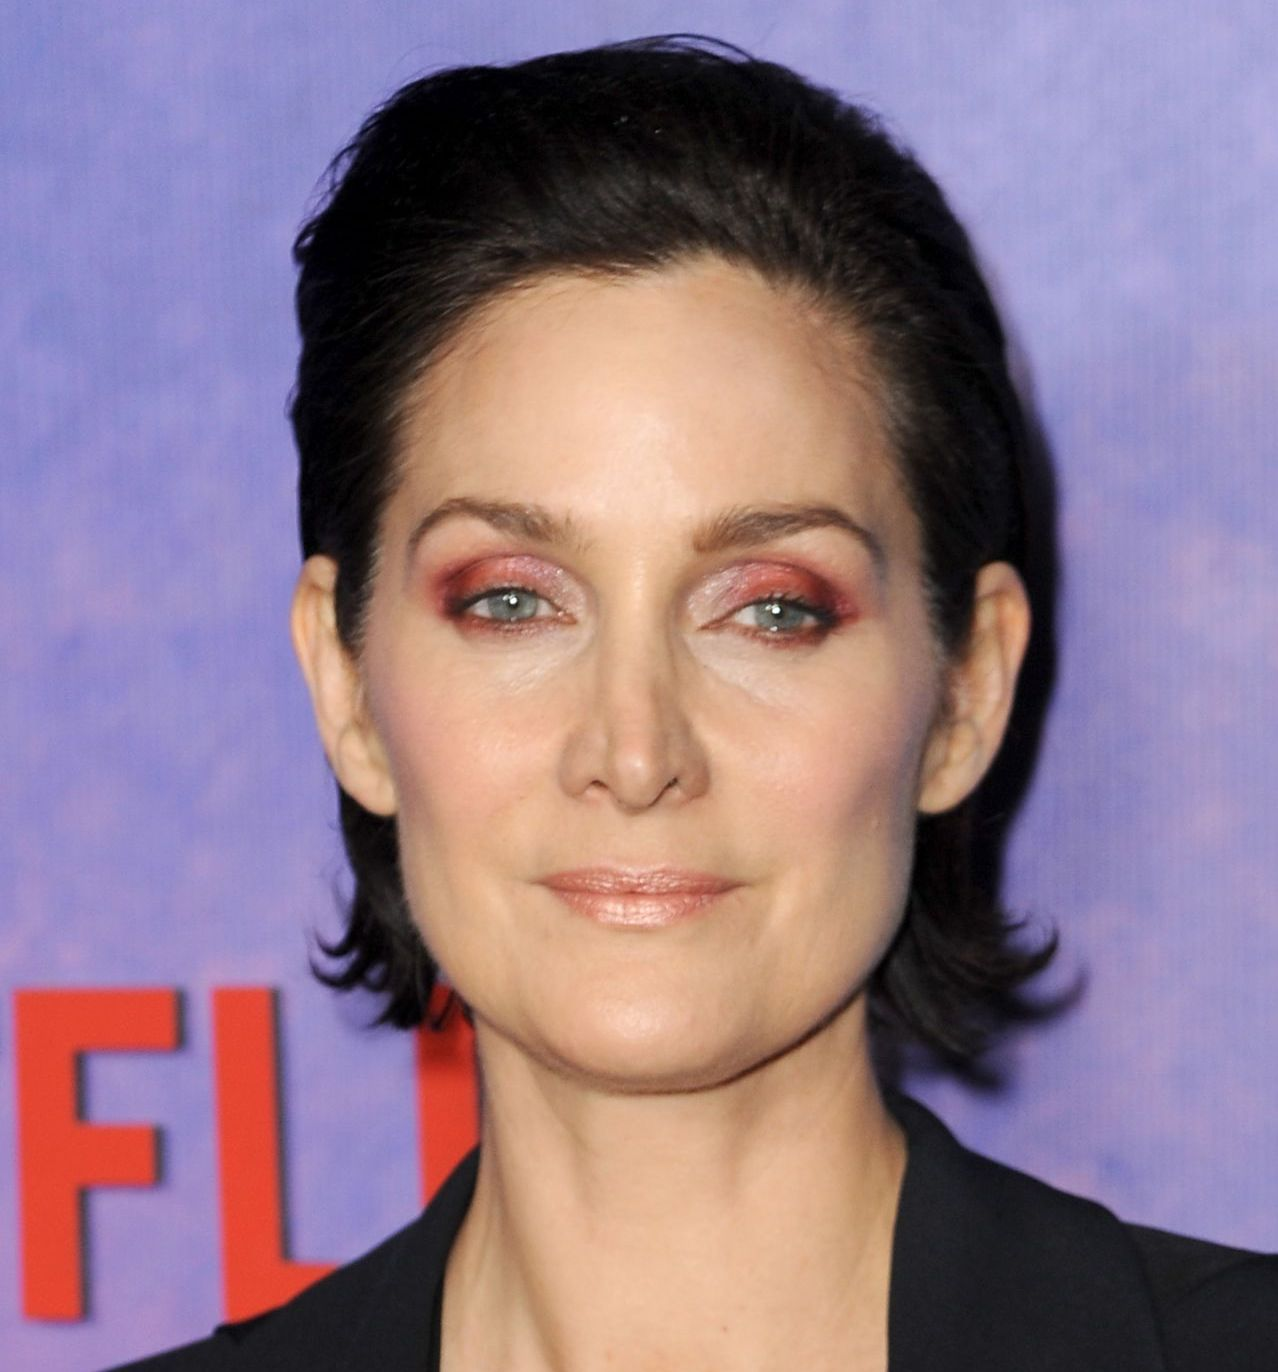 carrie anne moss jessica jones season 2 premiere in nyc 6 20 Unreal Facts You Never Knew About The Matrix